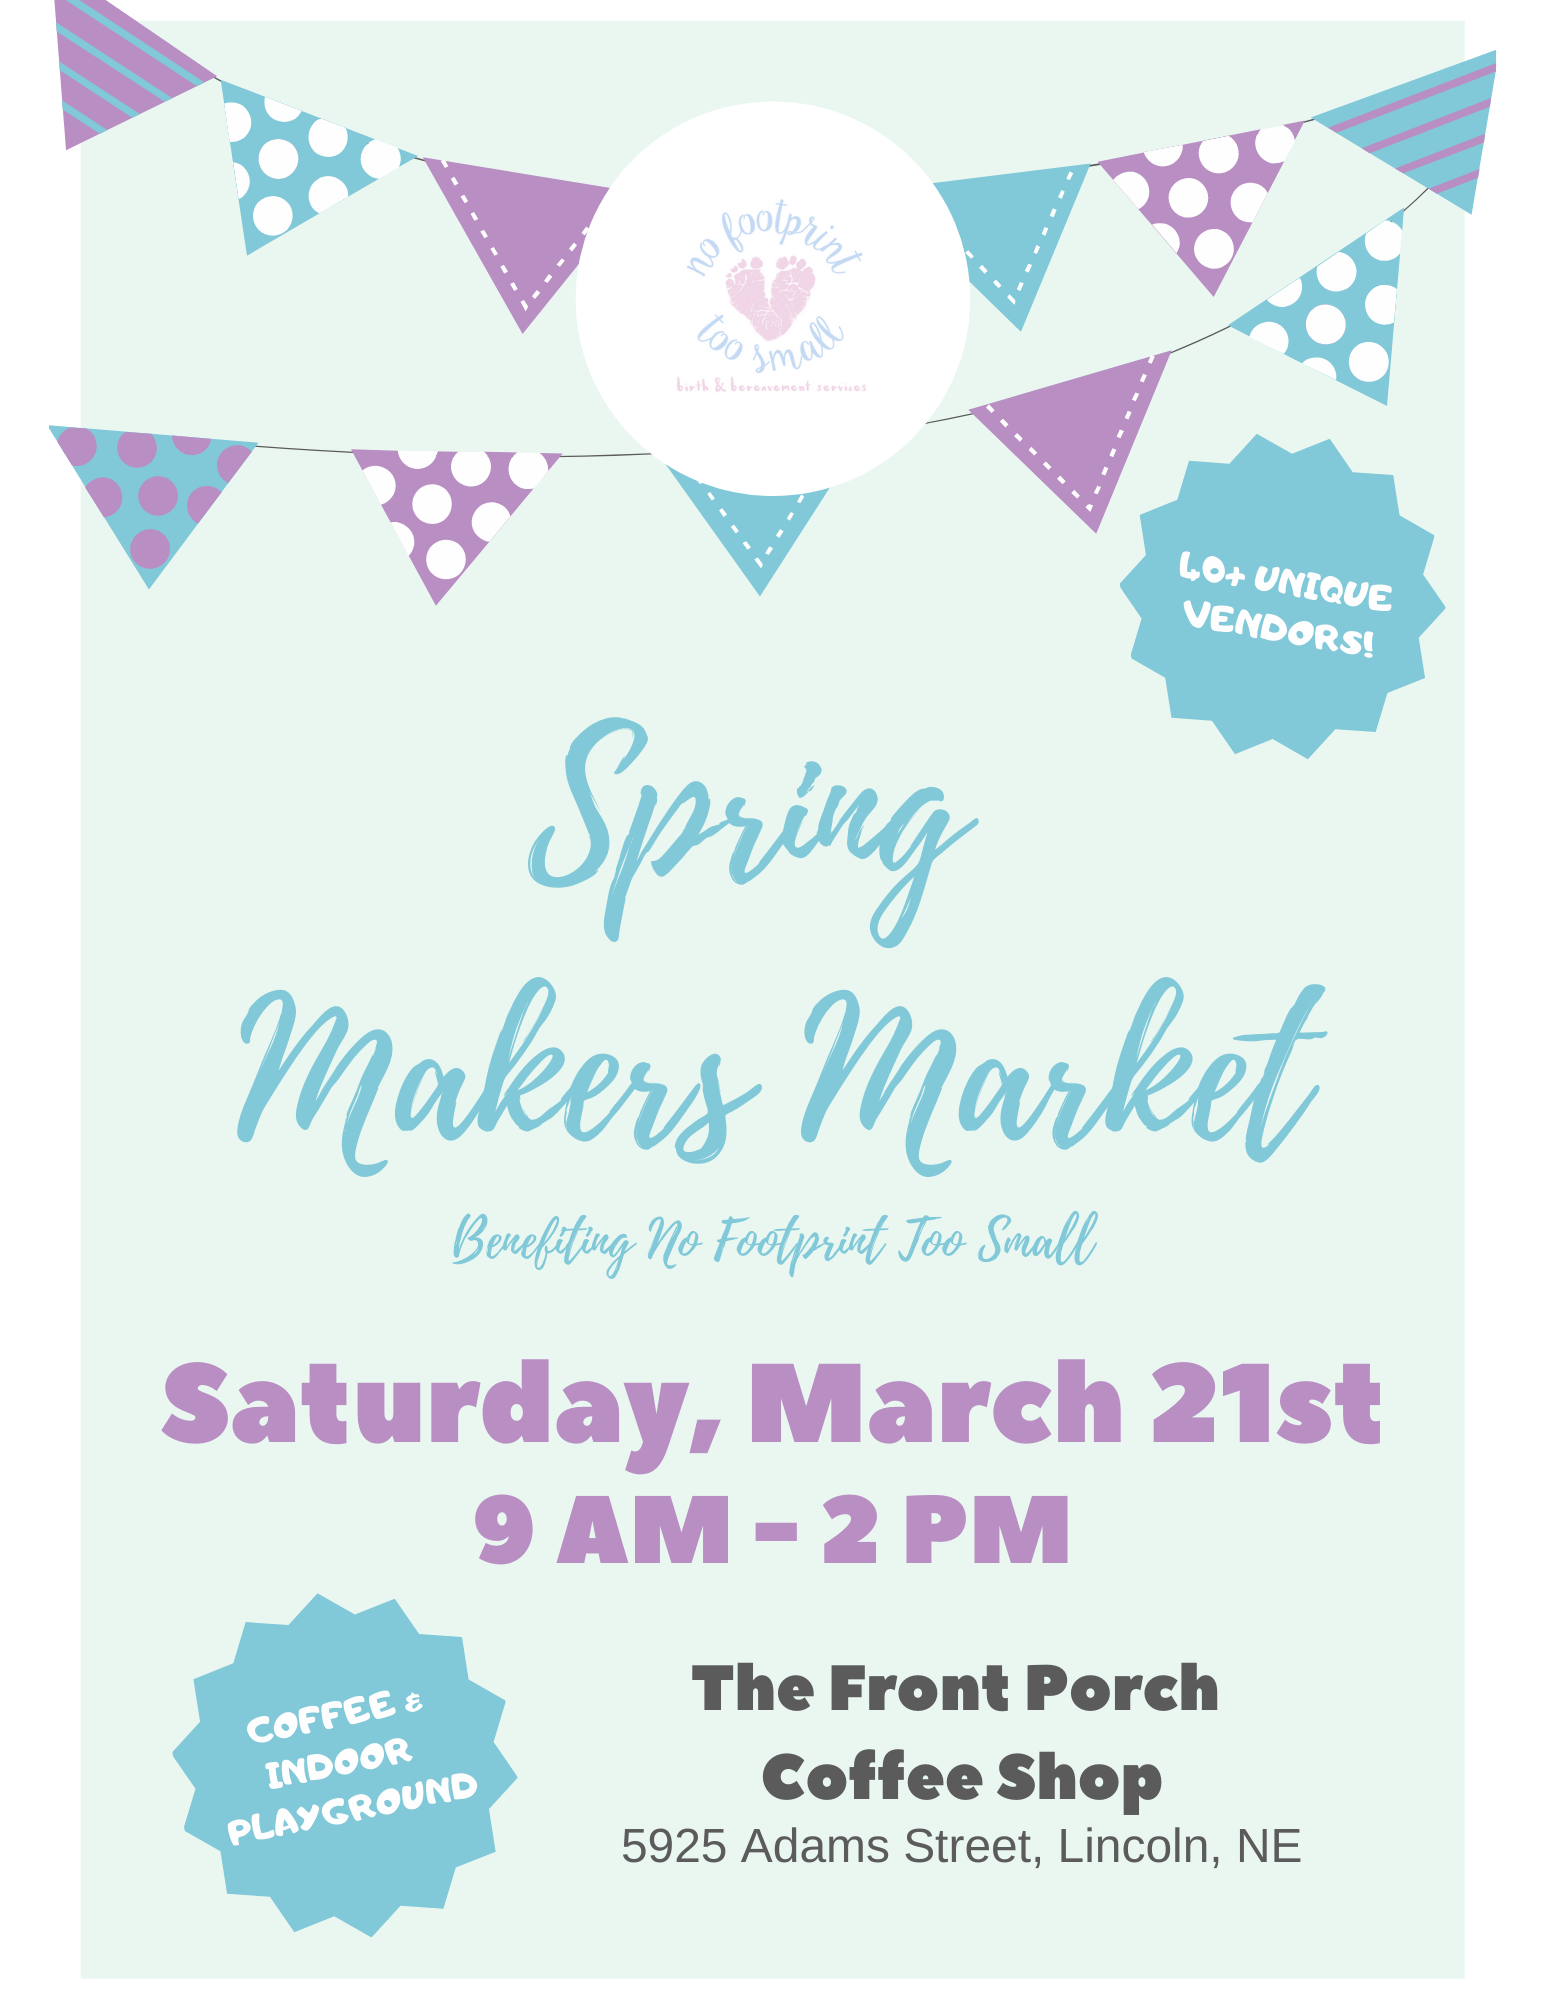 NFTS Spring Makers Market @ The Front Porch Coffee Shop